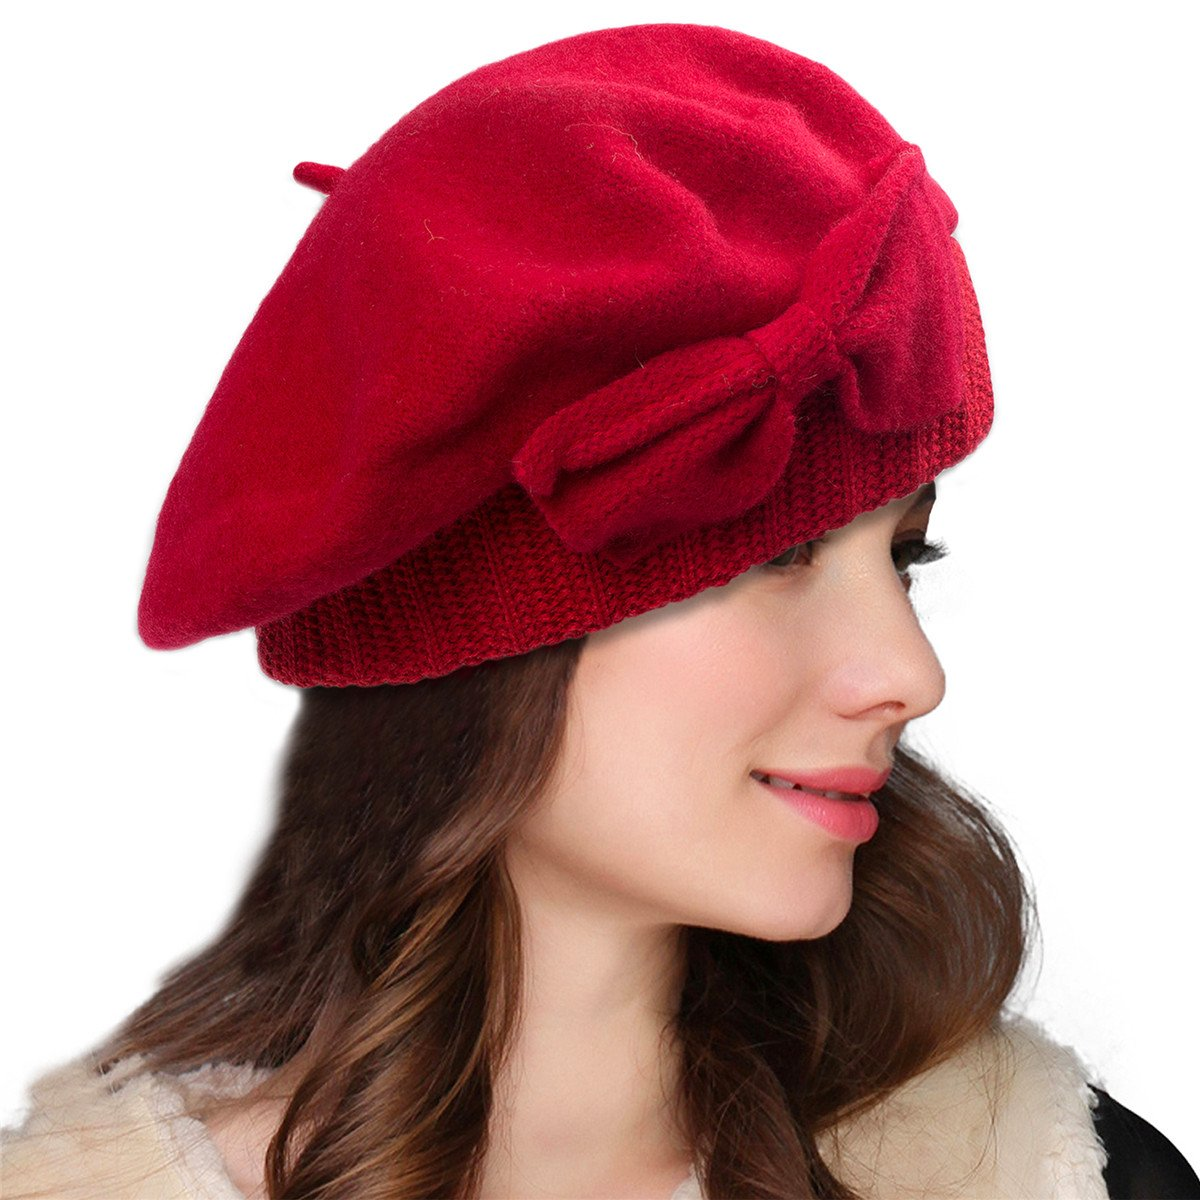 Lawliet Womens 100% Wool Loretta Beret Nipple Beanie Basque artist Cap A481 (Red)